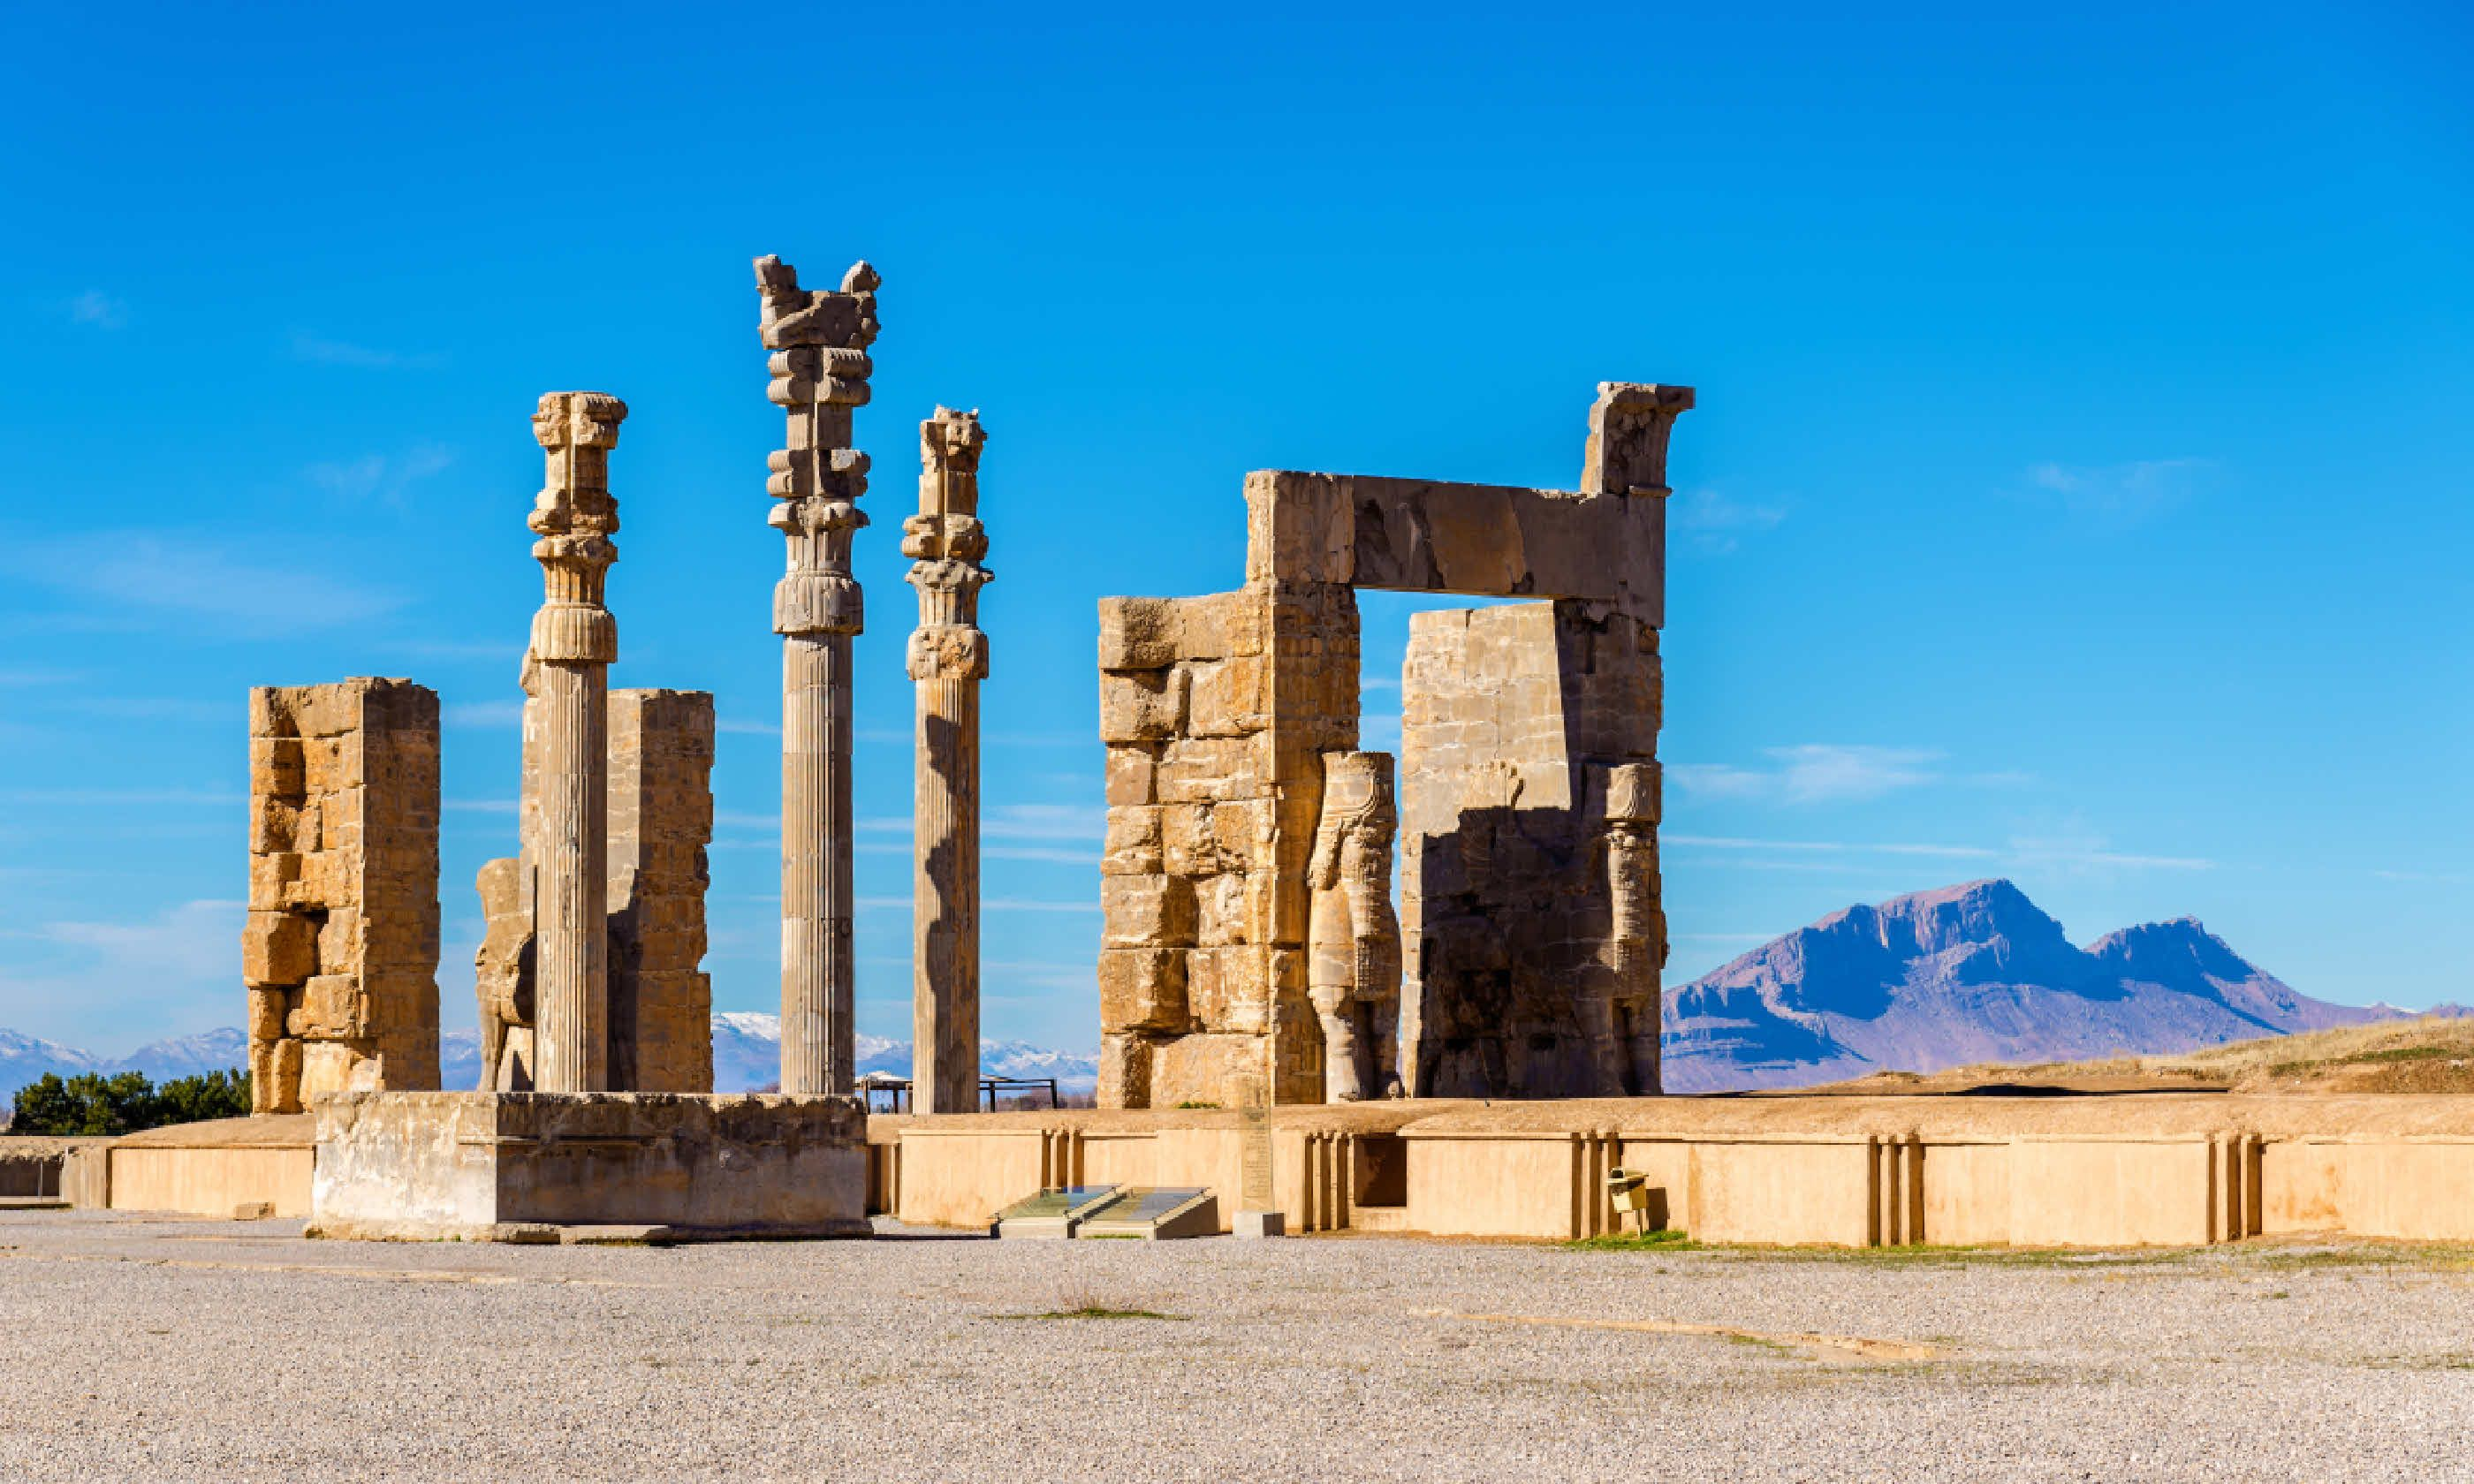 Gate of All Nations in Persepolis (Shutterstock)